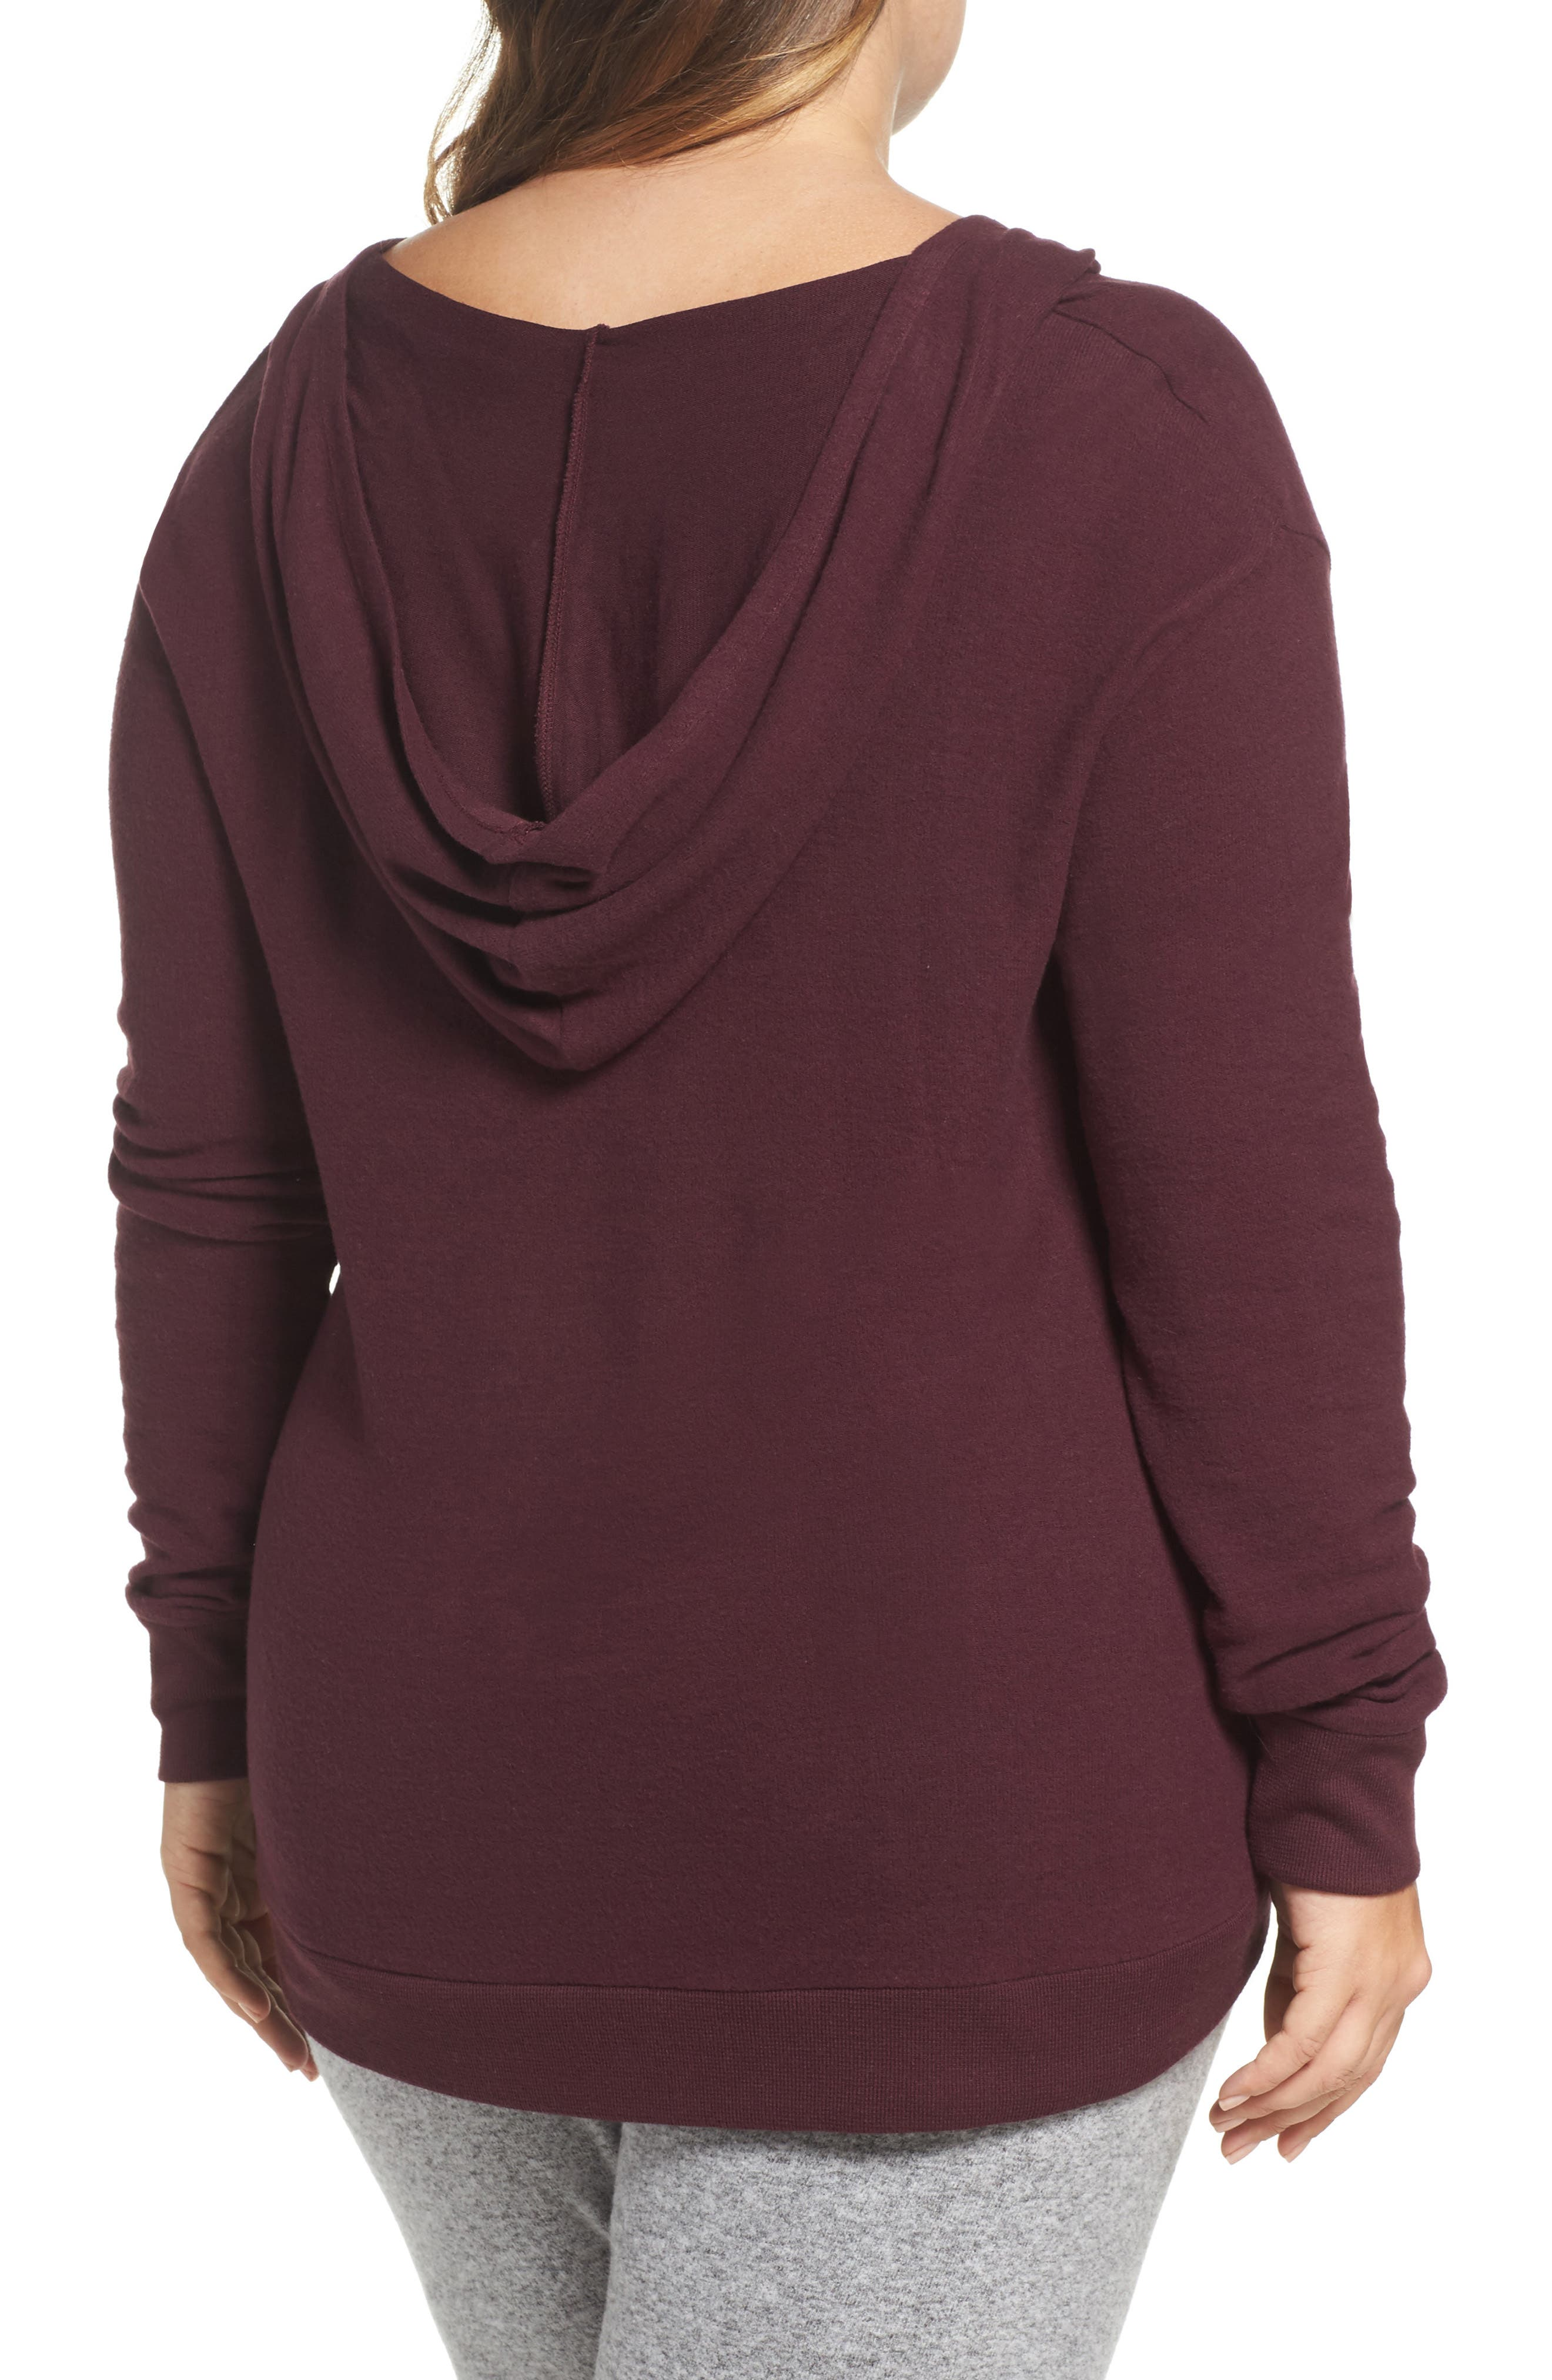 Lace-Up Pullover,                             Alternate thumbnail 2, color,                             Burgundy Stem Marl